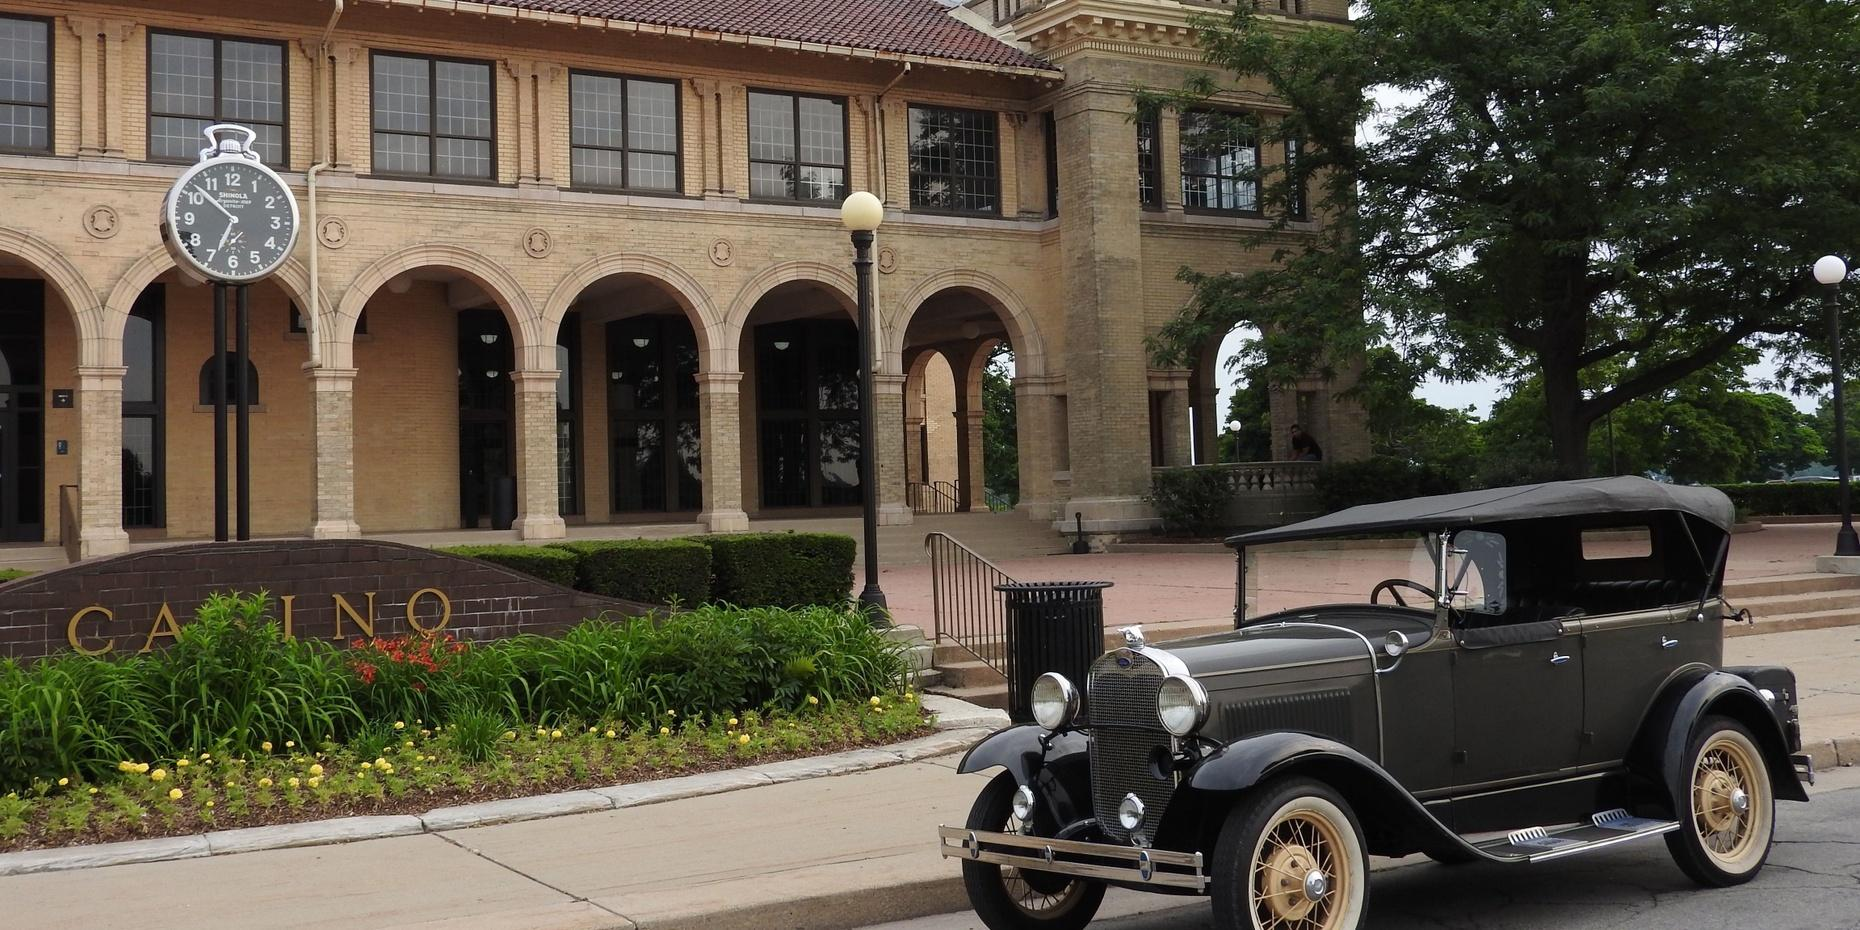 Historic Tour of Belle Isle in a Classic Car